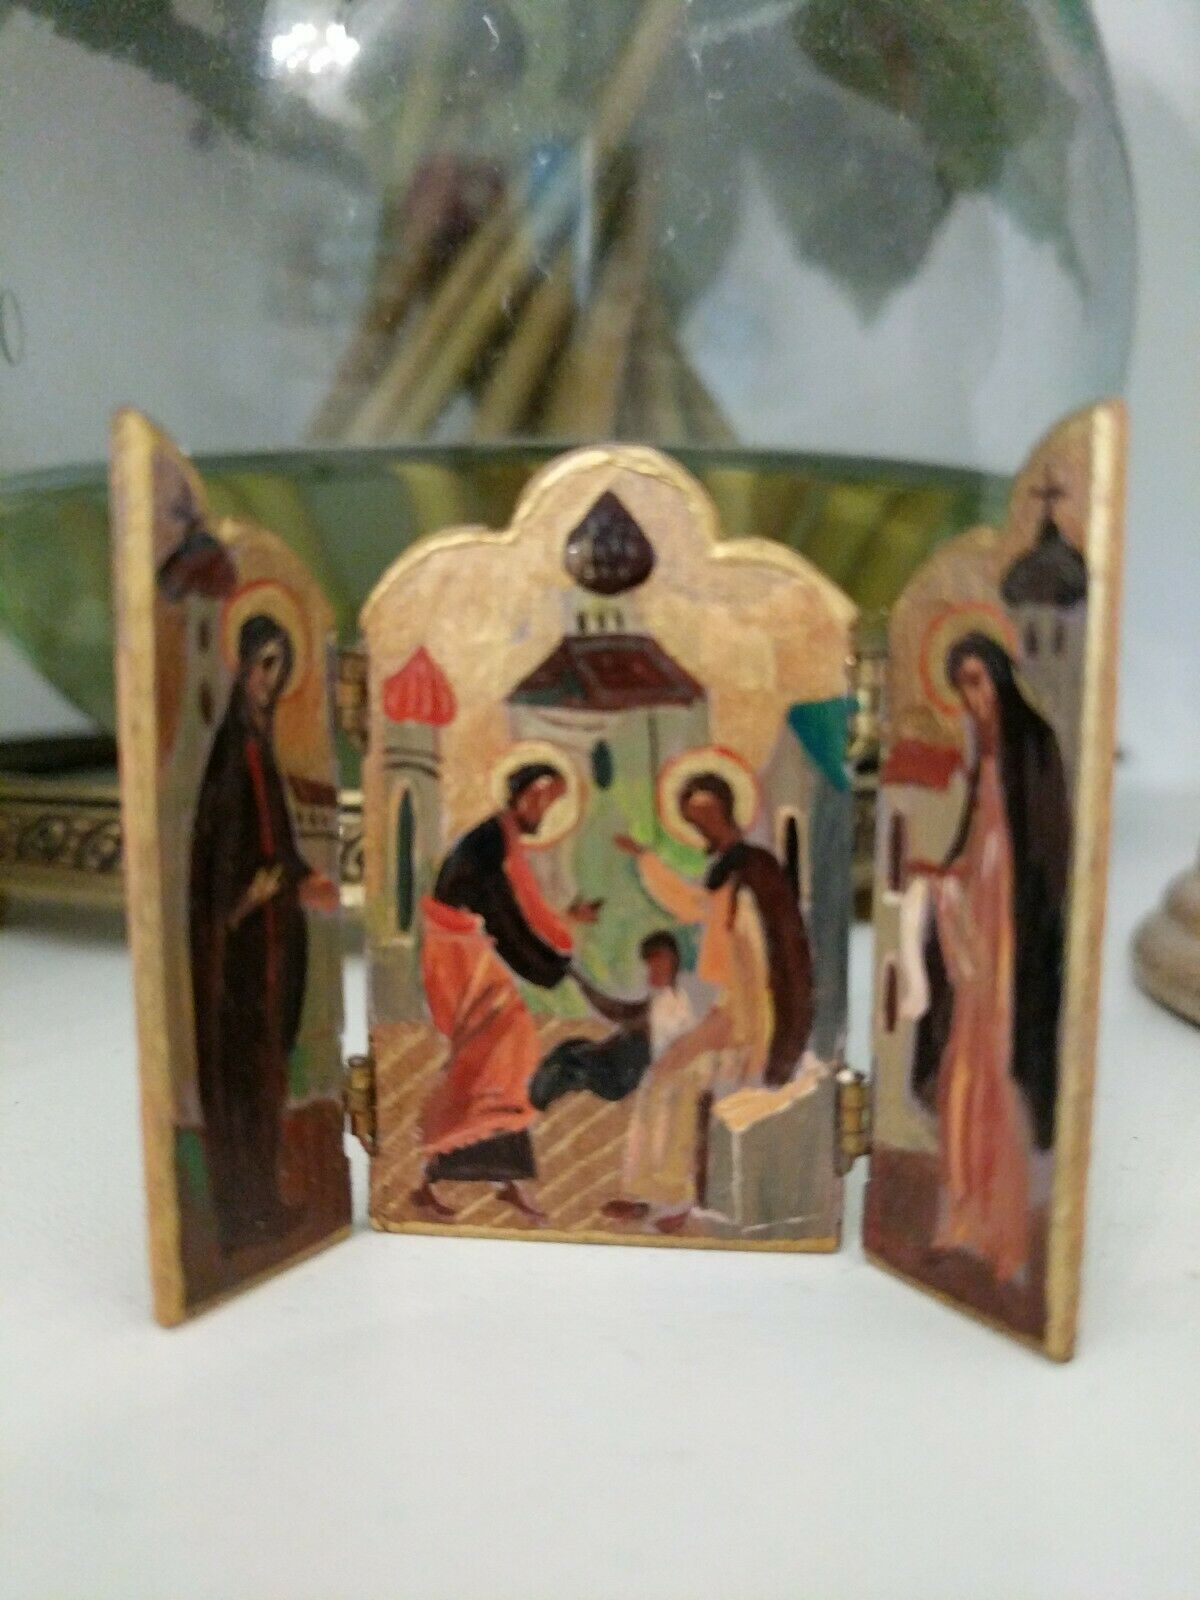 1983 Natasha Beshenkovsky Miniature Dollhouse FIRE SCREEN icon orthodox